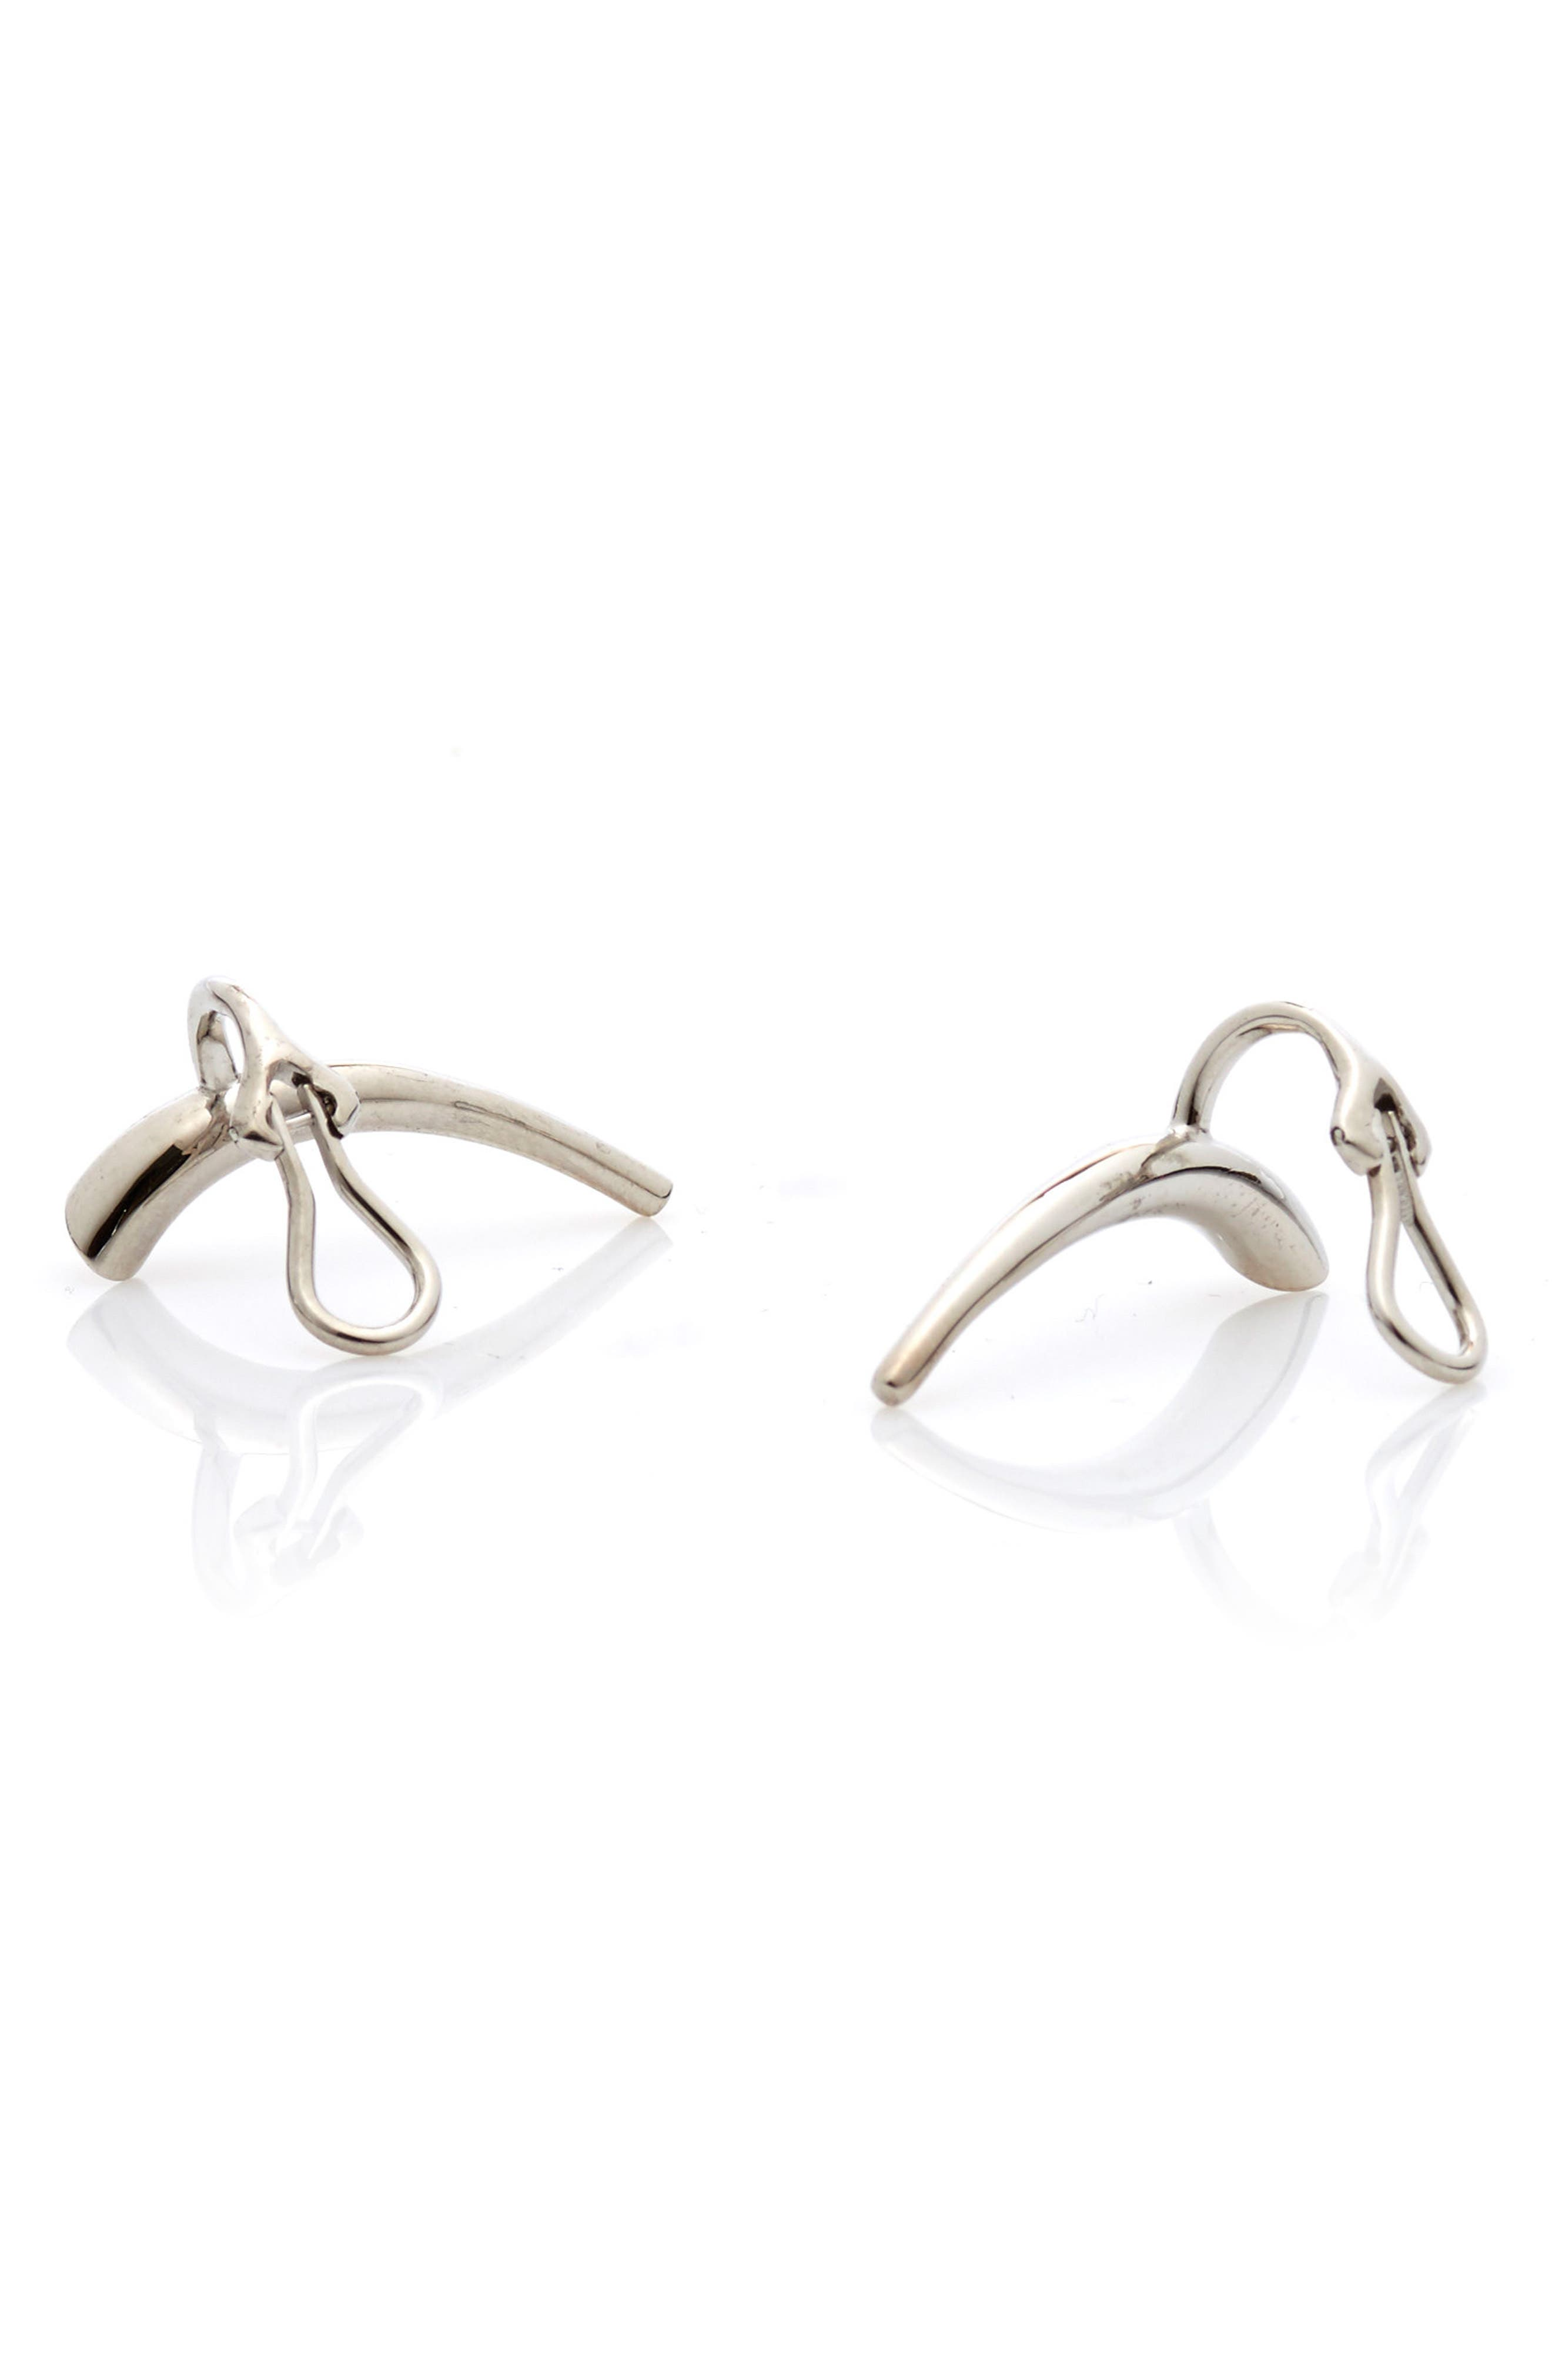 Helix Silver Ear Cuffs,                         Main,                         color, 040